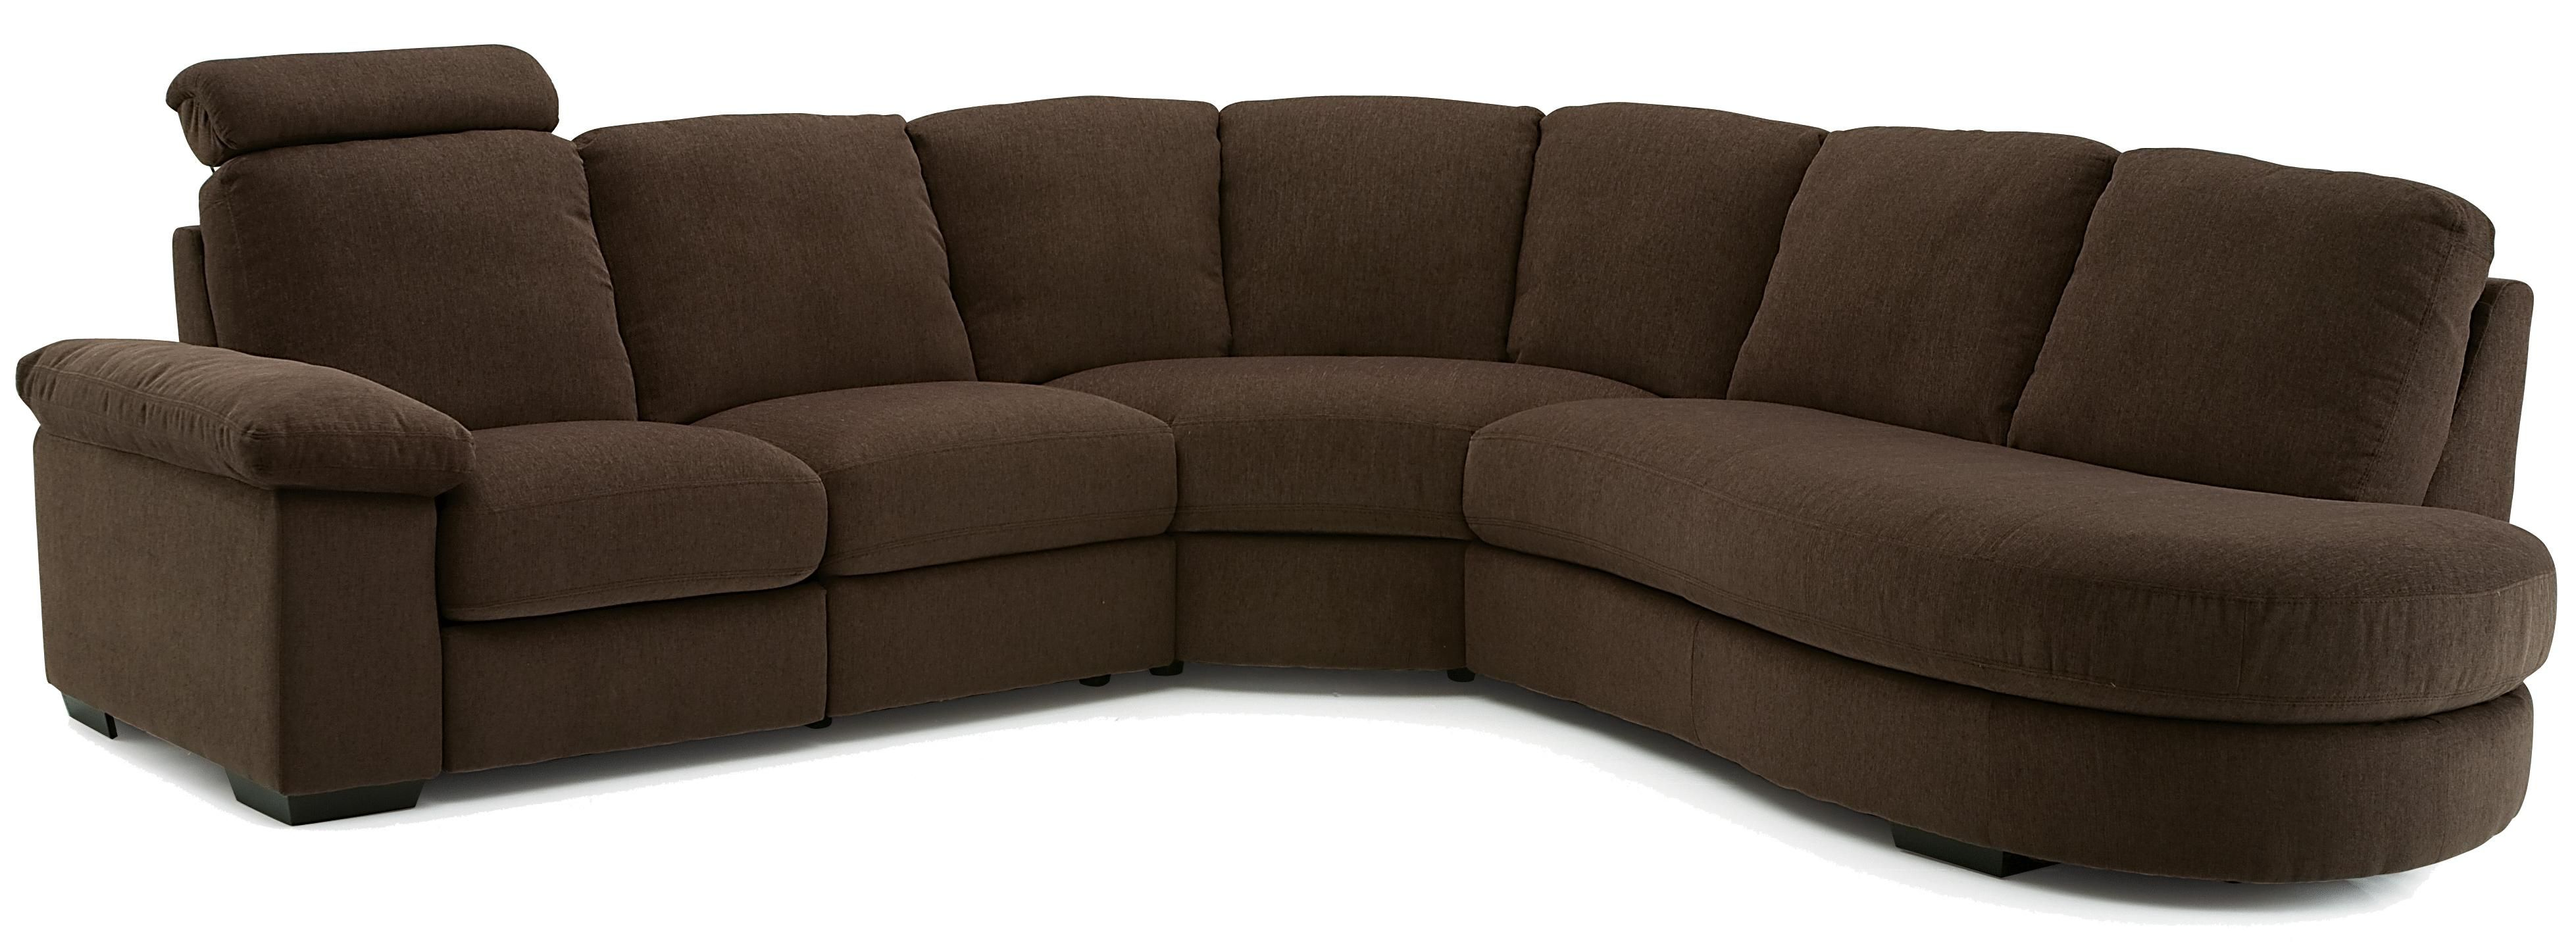 Infineon Reclining Sectional by Palliser See it here